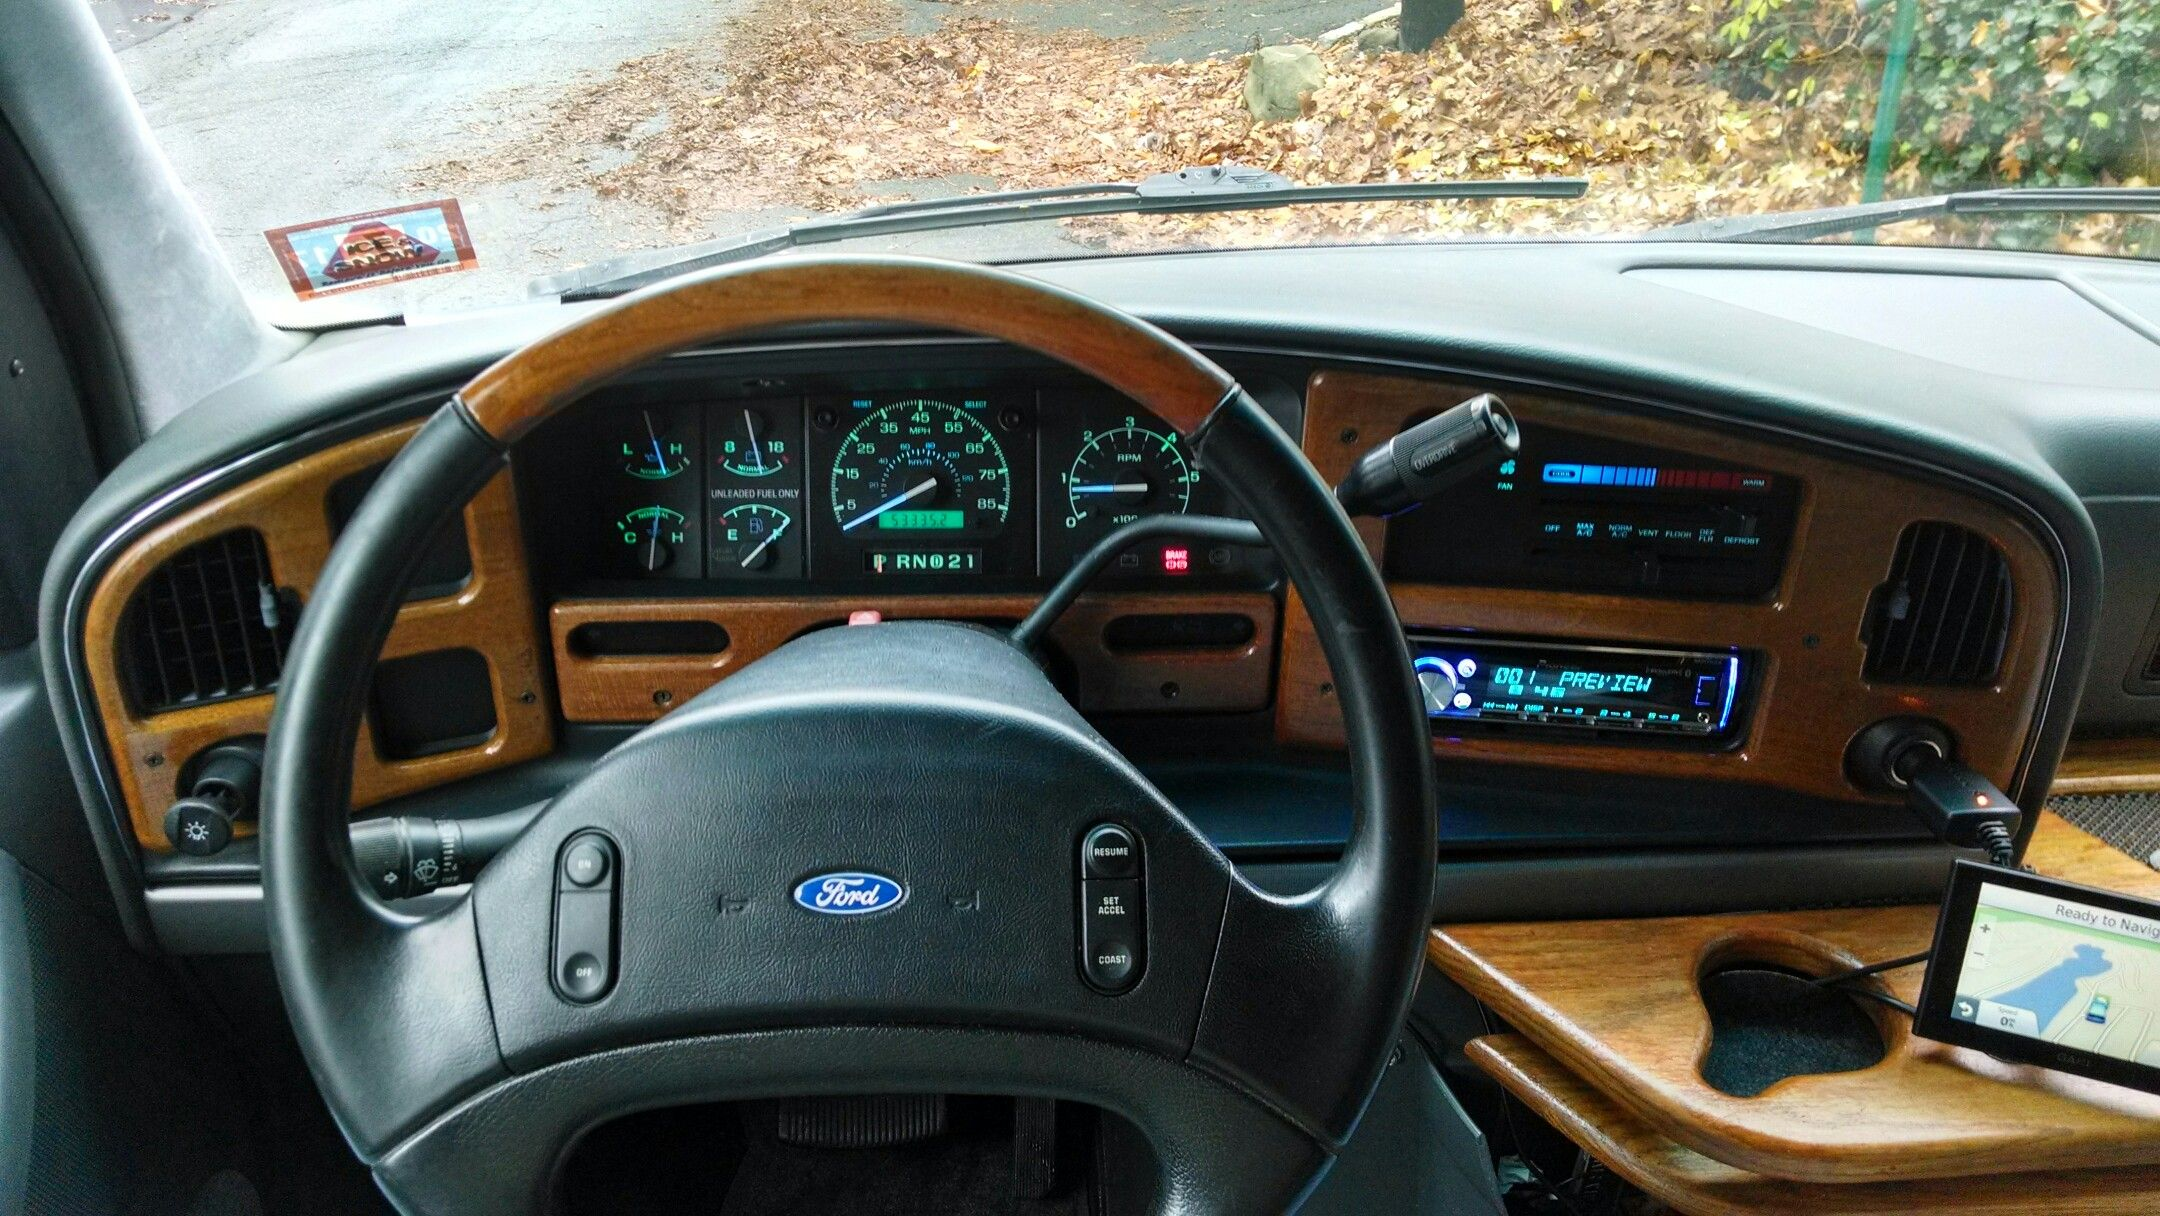 hight resolution of  swapped in an f150 instrument cluster with tachometer blue leds and added satellite radio also rewired fuse box so lighter socket is only